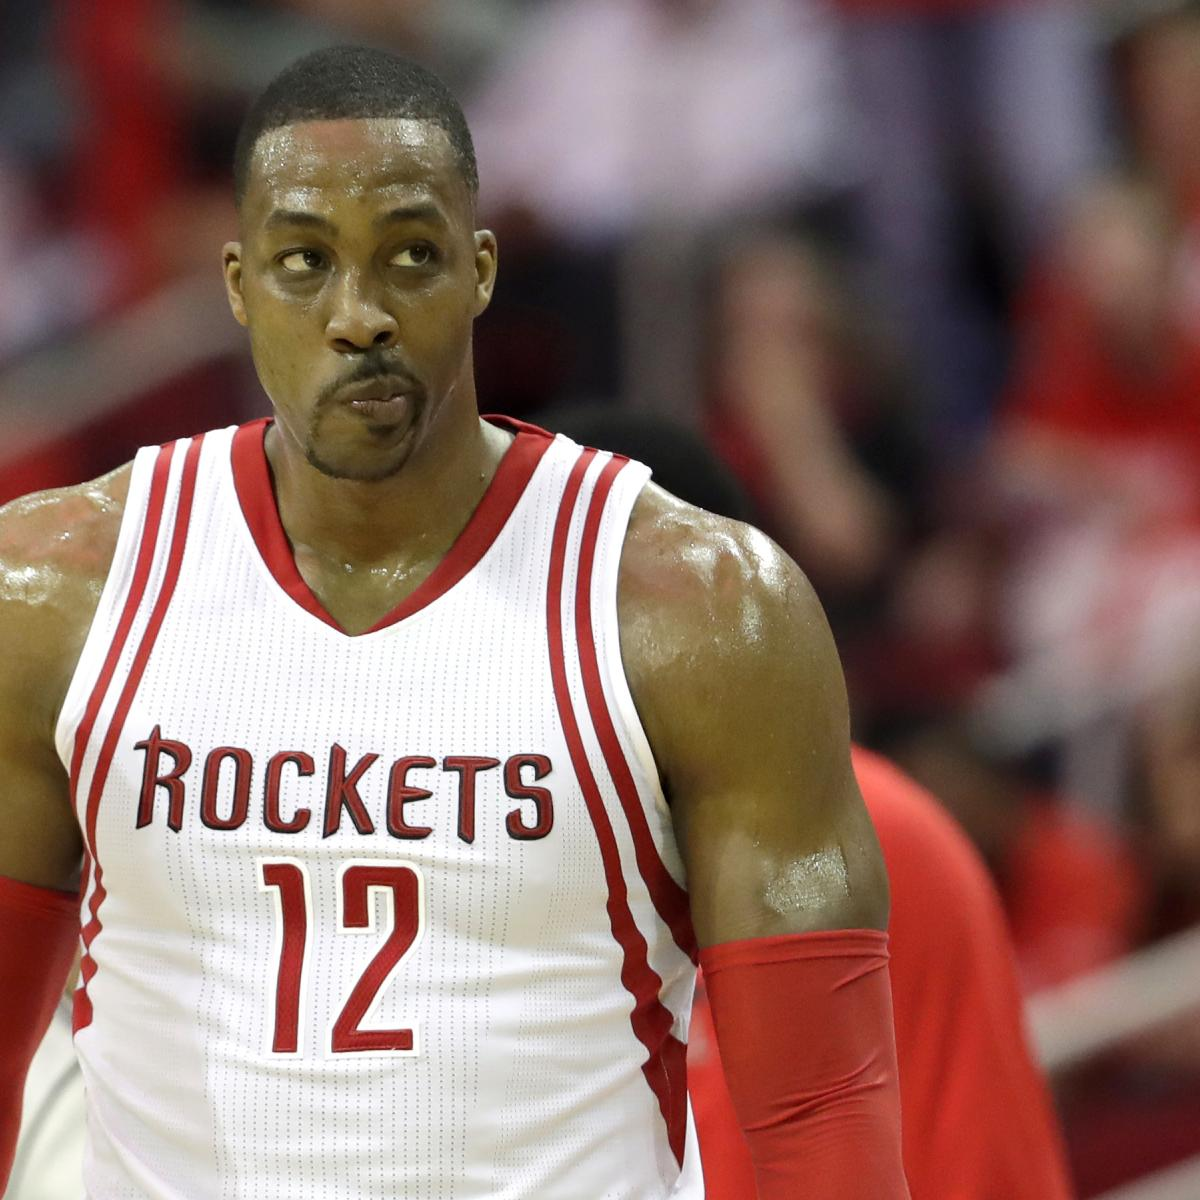 Houston Rockets Where To Watch The Upcoming Match Espn: Dwight Howard Jokes He Doesn't Know If He Can Watch